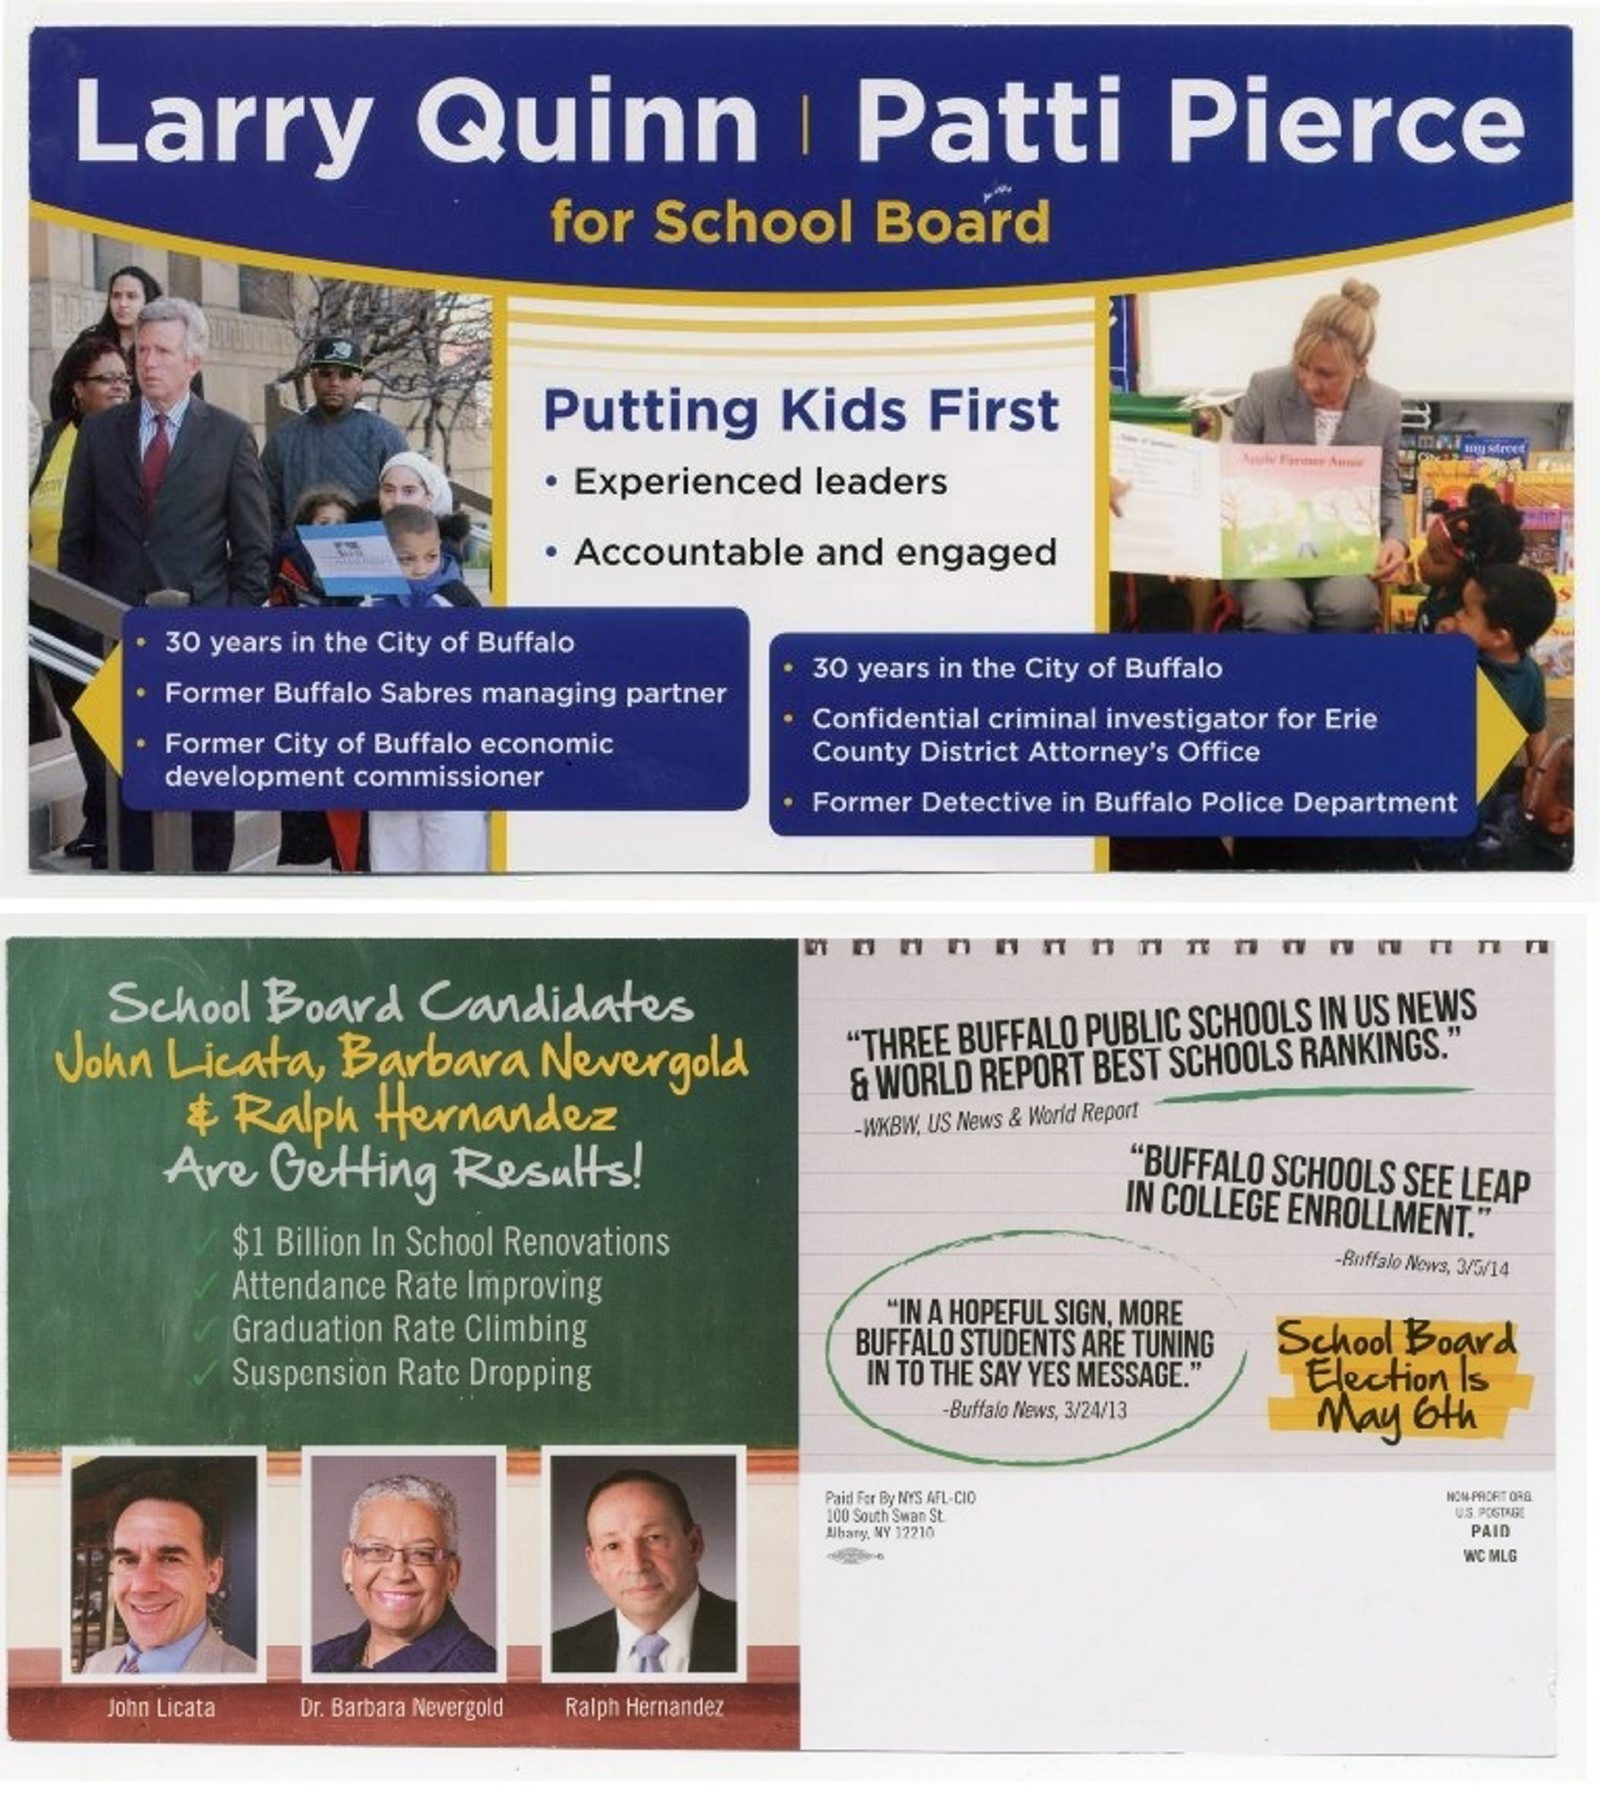 Several candidates' campaigns got significant help from outside groups. The Buffalo Niagara Partnership paid for a mailer to be sent to 16,000 voters on behalf of Larry Quinn and Patricia A. Pierce, top. The AFL-CIO sent mailers to 20,000 union households on behalf of Barbara A. Seals Nevergold, John B. Licata and Ralph R. Hernandez.